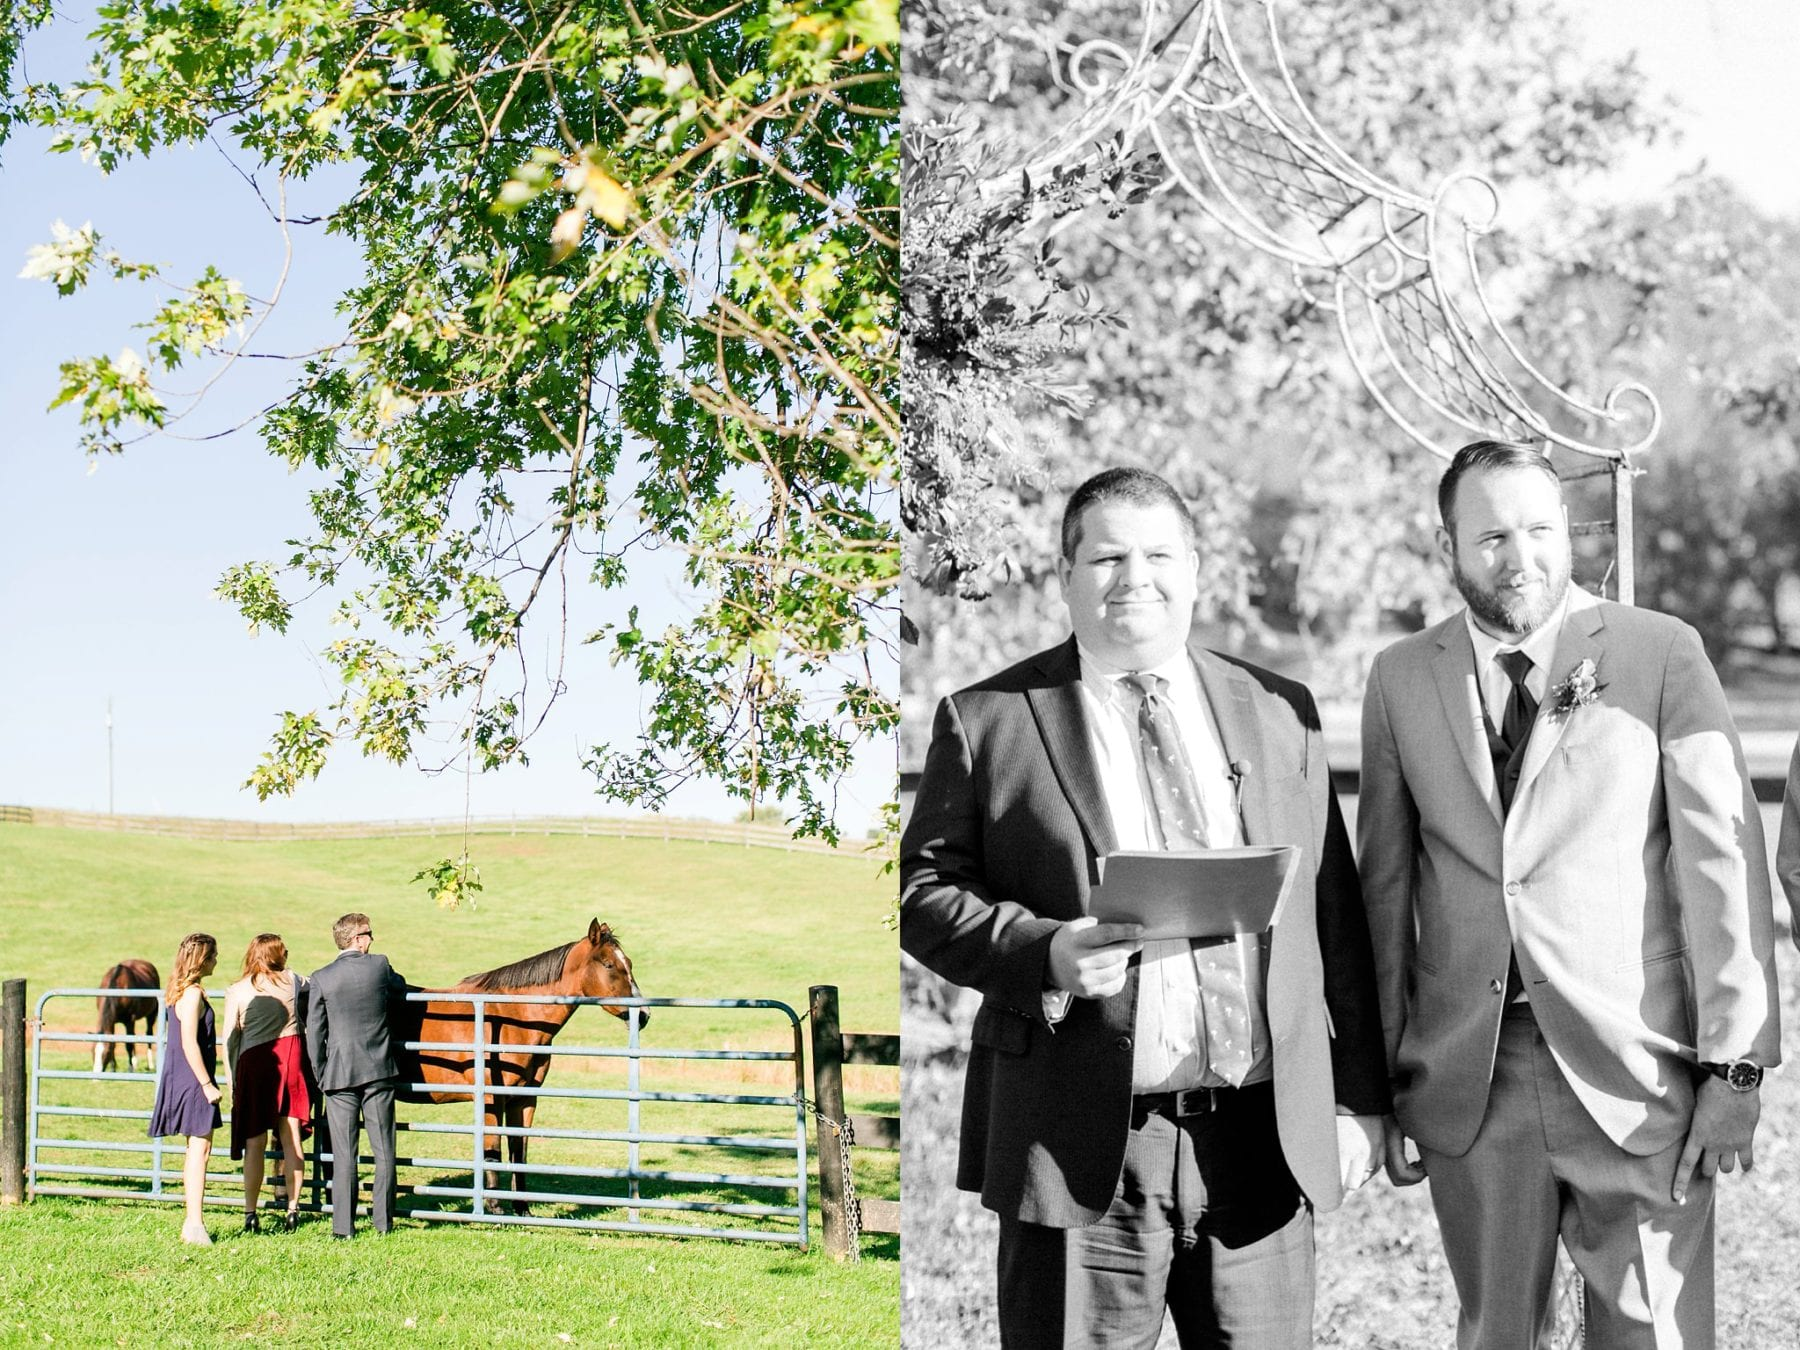 Tranquility Farm Wedding Photos Leesburg Wedding Photographer Megan Kelsey Photography Virginia Wedding Photographer Matt & Colleen-120.jpg